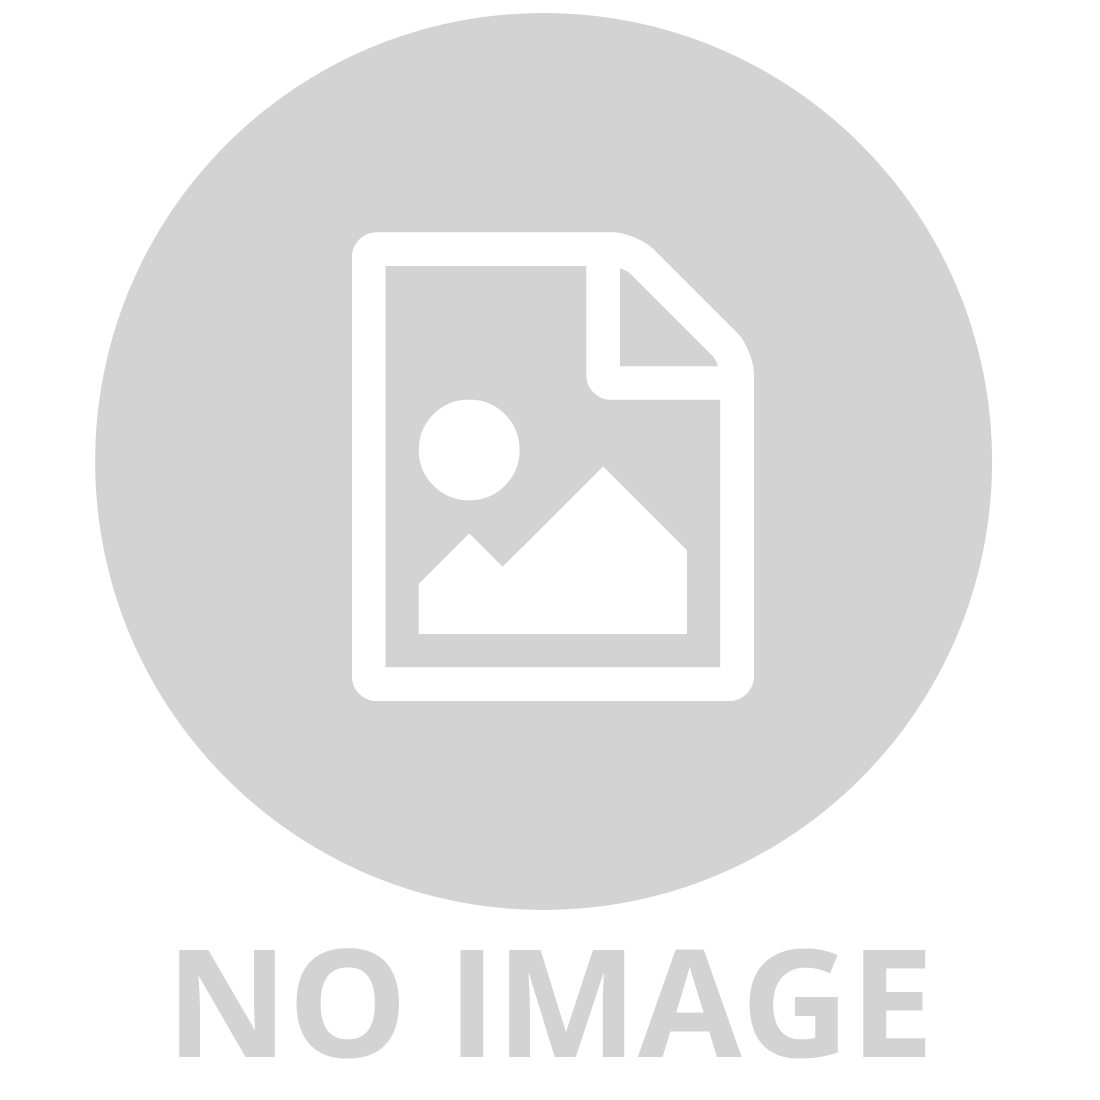 BEANIE BOOS REGULAR RAINBOW MULTICOLOUR POODLE